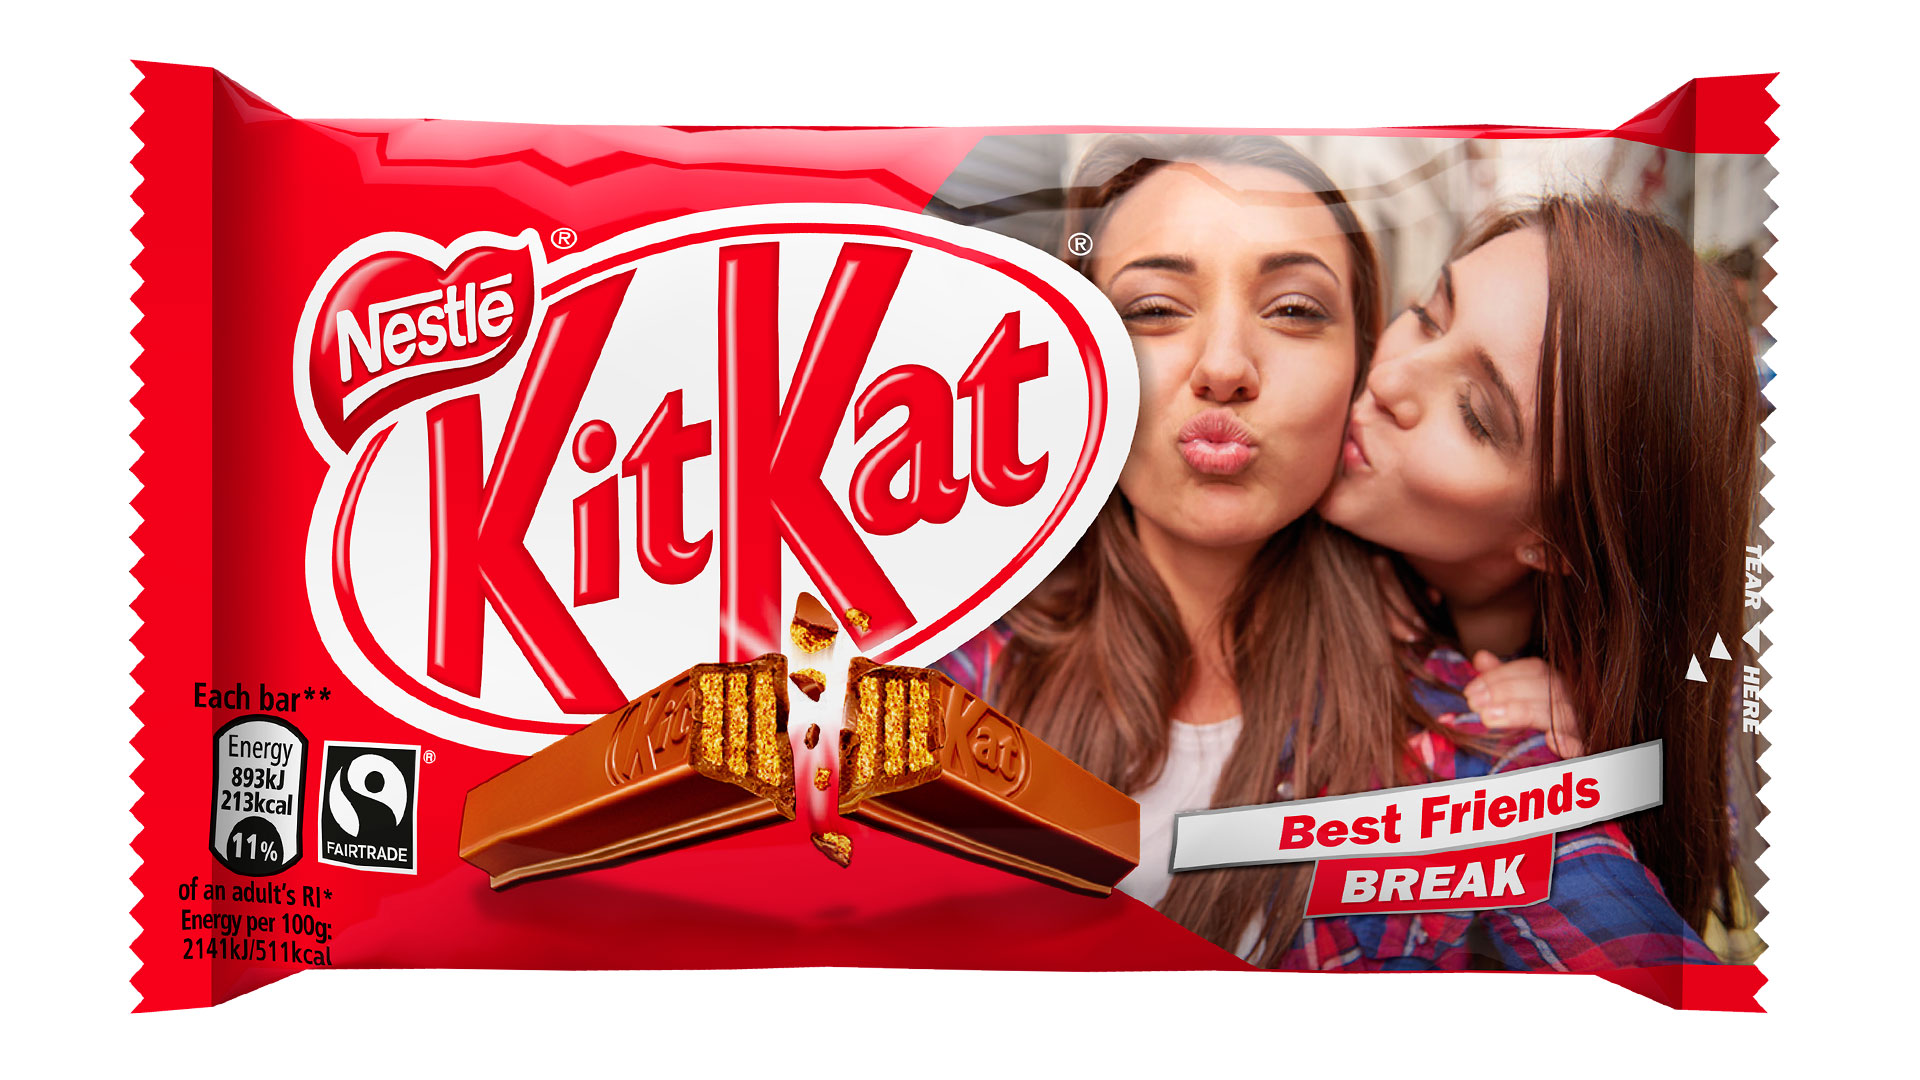 personalised_kitkat_packs_1_tcm245_2451500_tcm245_2451582_tcm245-2451500